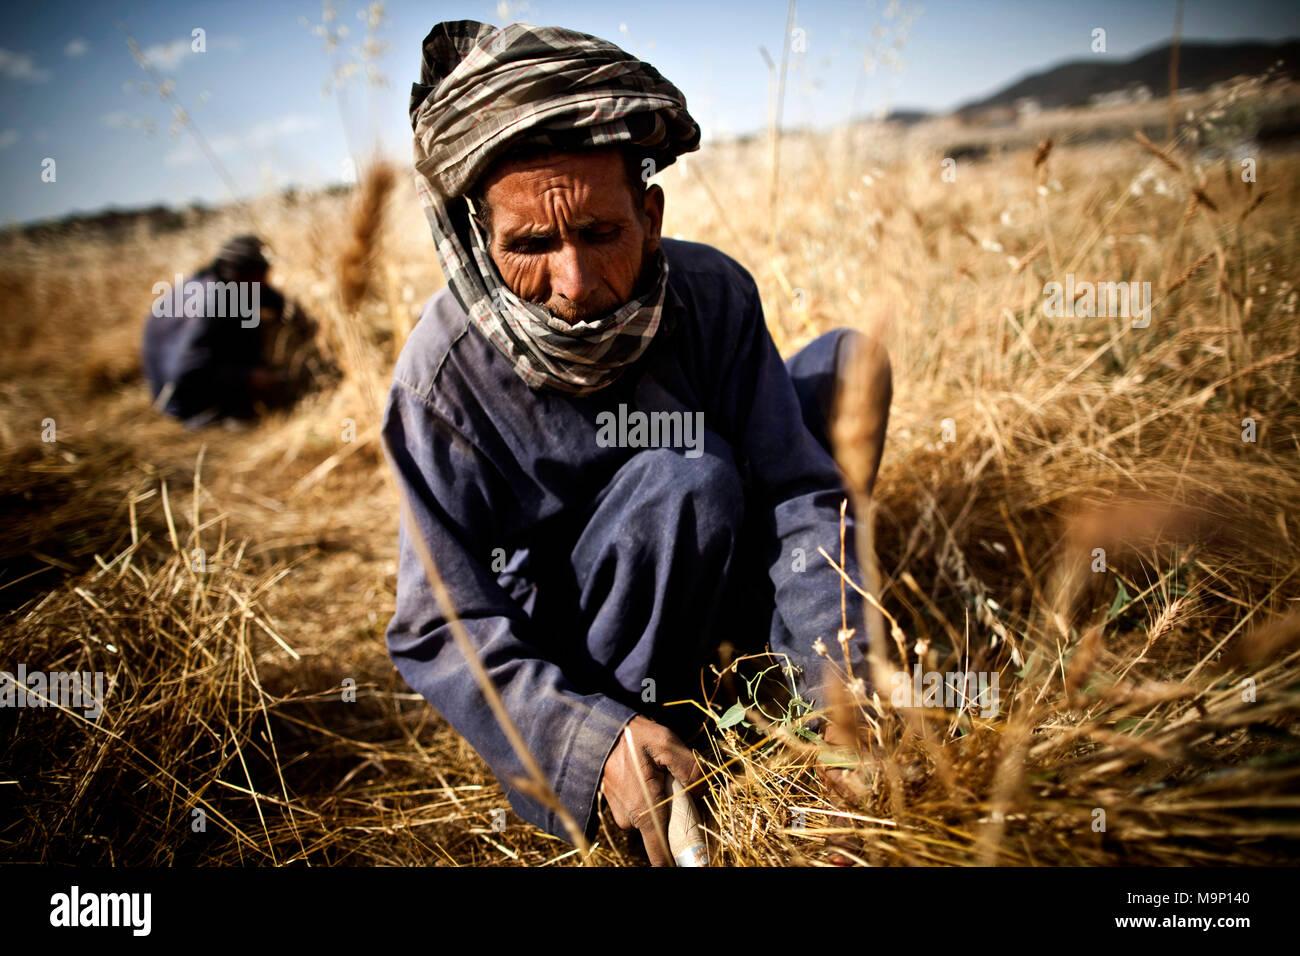 Afghan farmers work in the wheat fields in Paghman district, Kabul, Afghanistan, Wednesday, July 22, 2009. - Stock Image